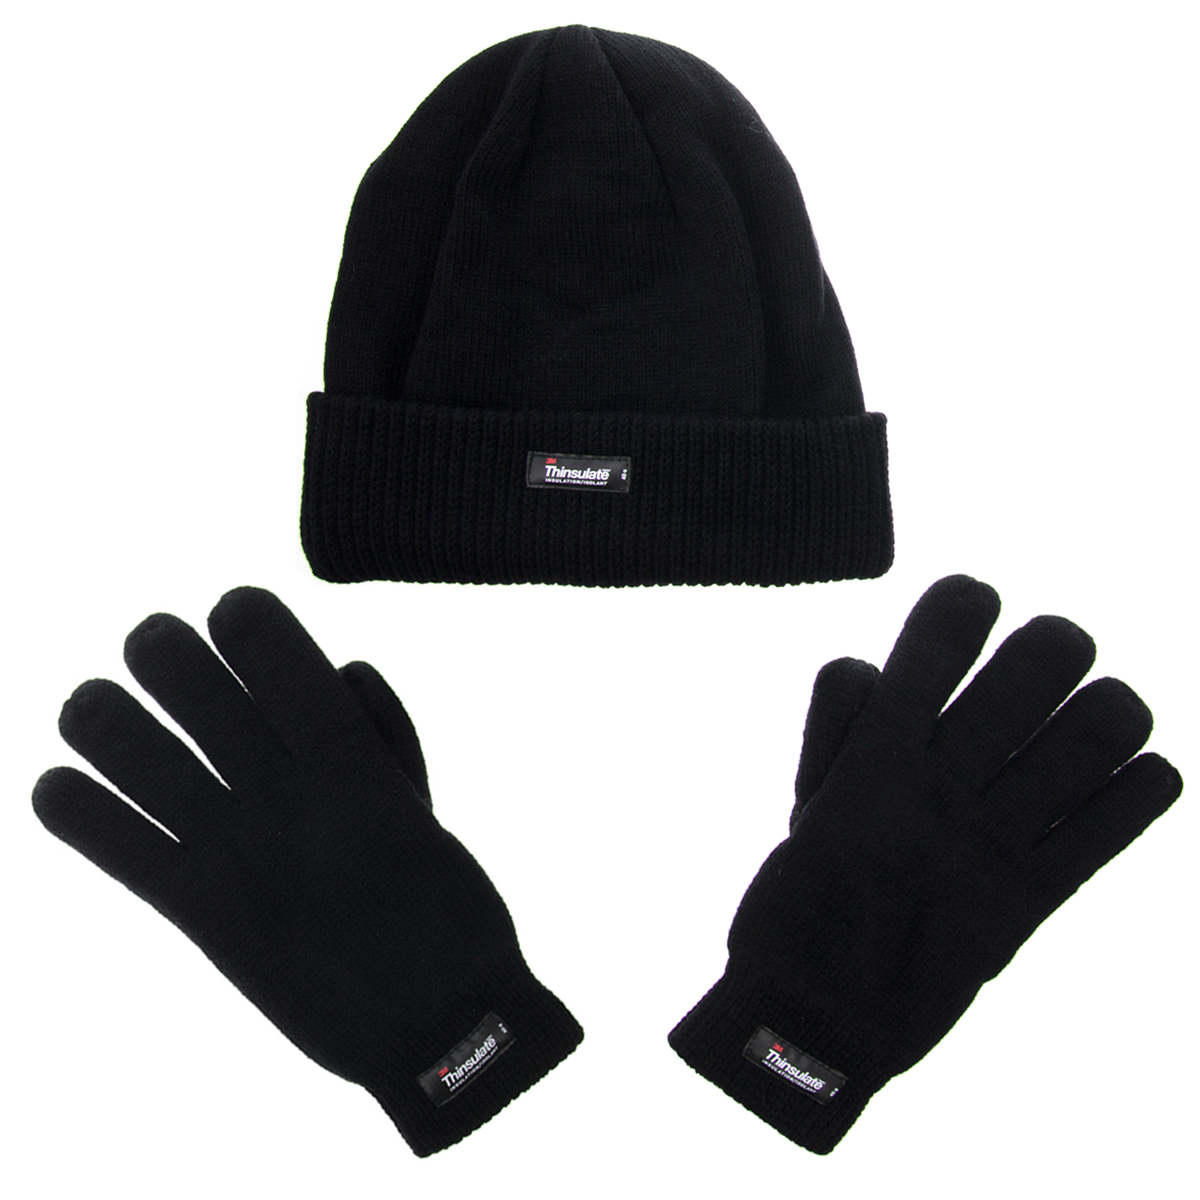 3M Men s Thinsulate 40g Black Beanie Hat   Gloves Fleece Lining For Winter  Snow Cold Weather Gear - Walmart.com 9bcd7362963